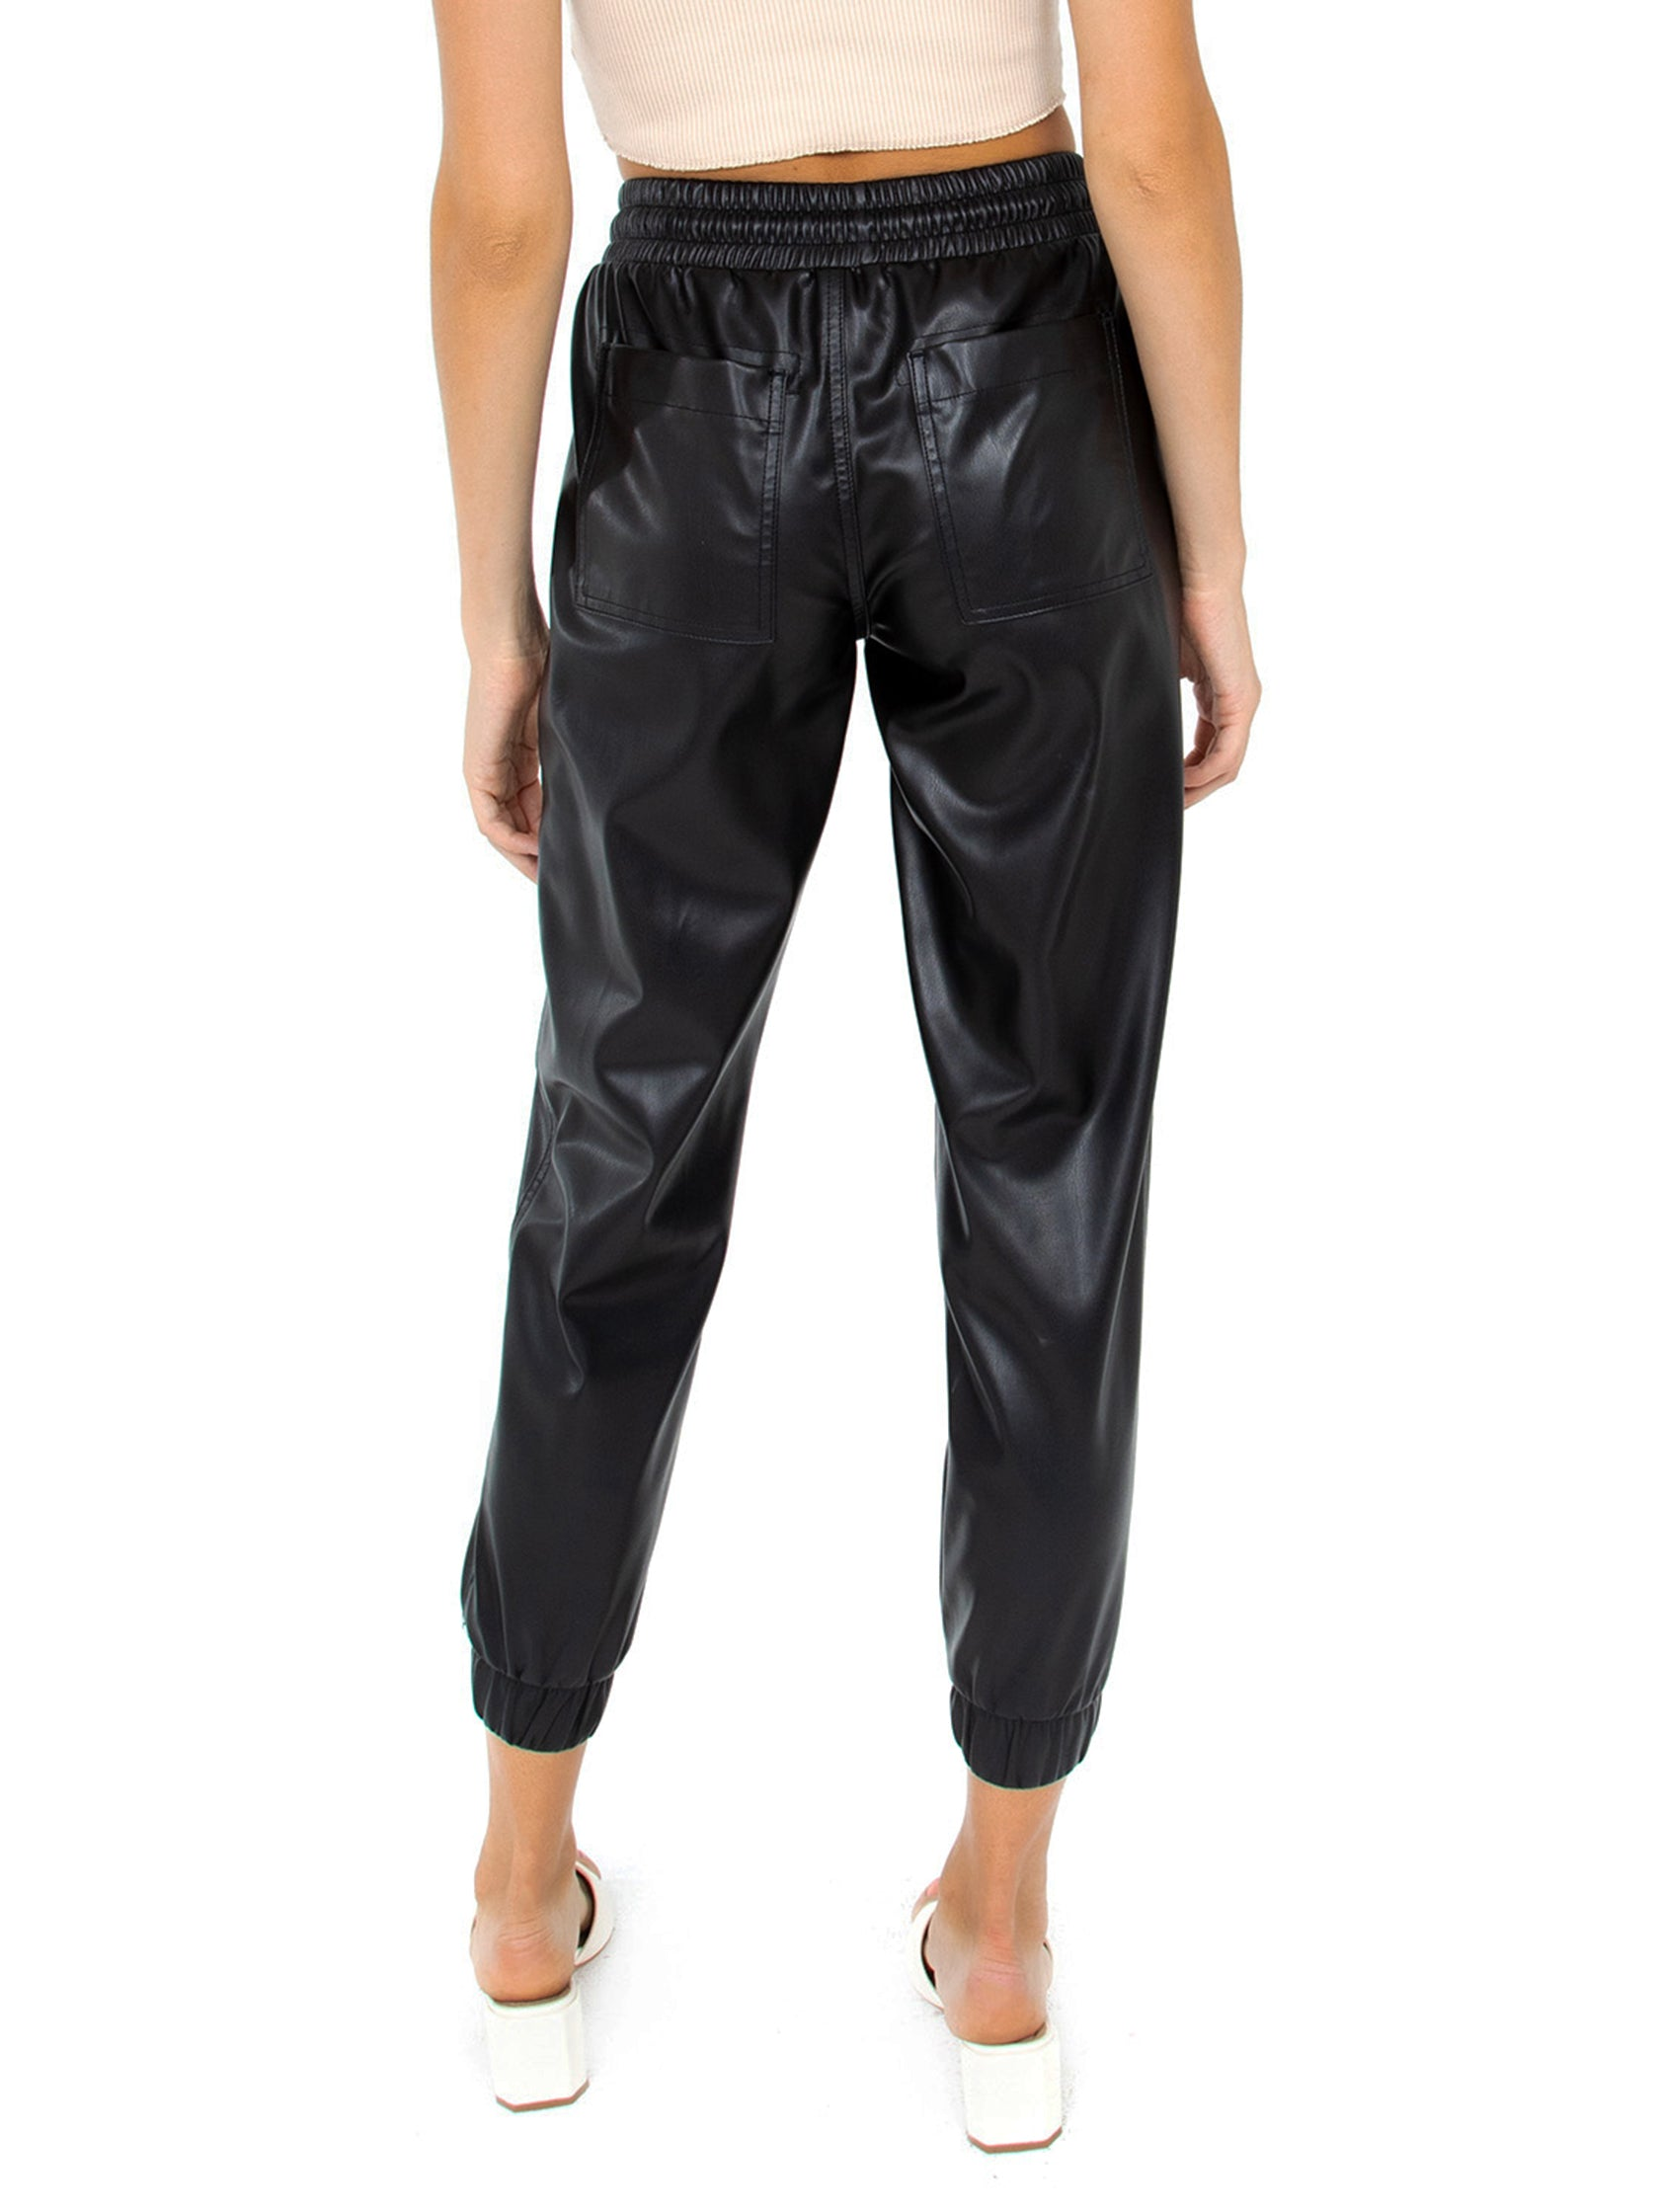 Women outfit in a pants rental from BLANKNYC called Faux Leather Jogger